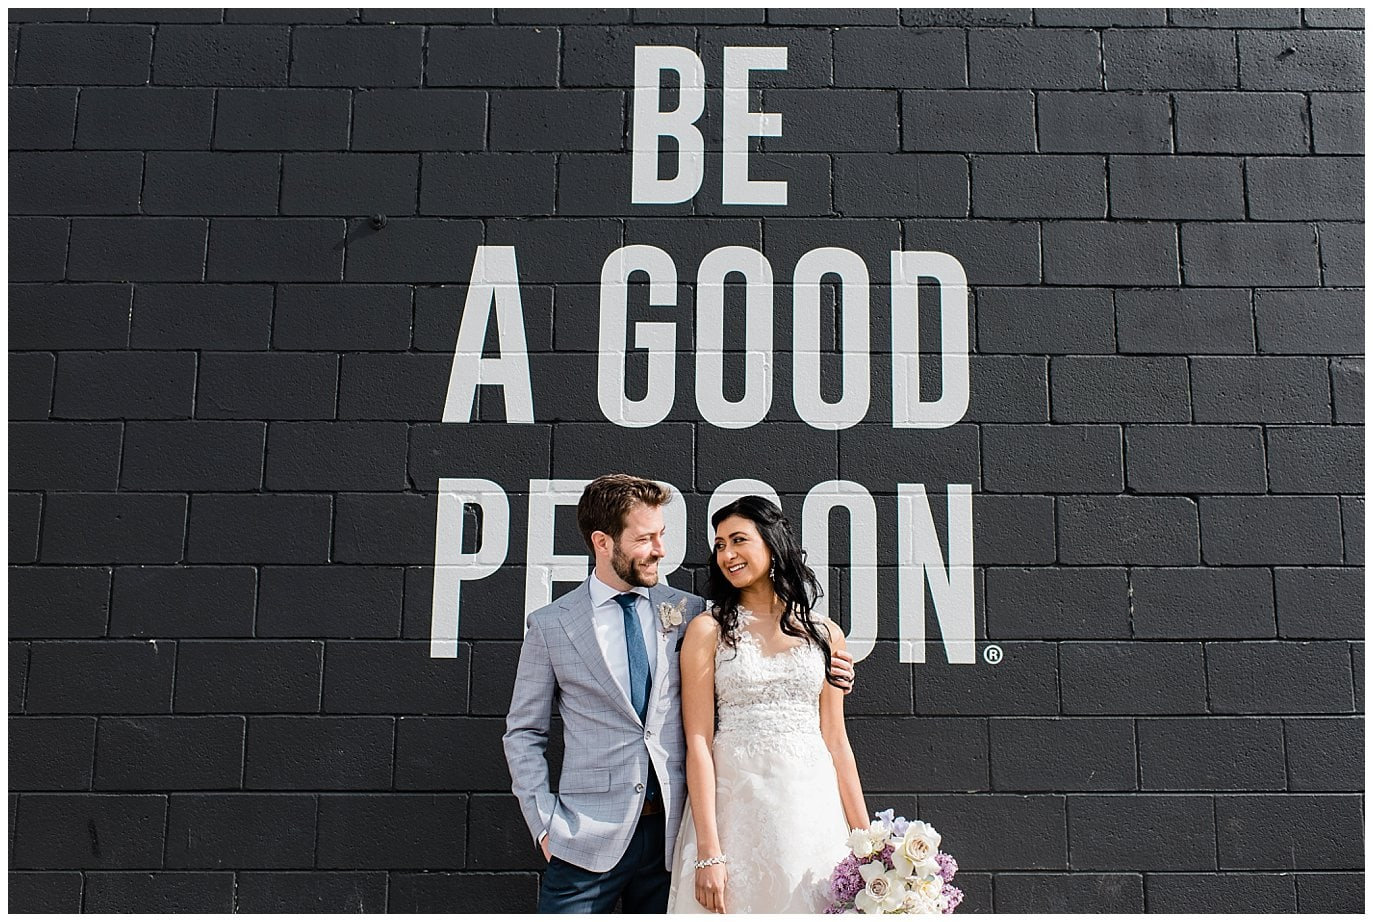 Be A Good Person Denver wedding by Blanc Wedding Photographer Jennie Crate